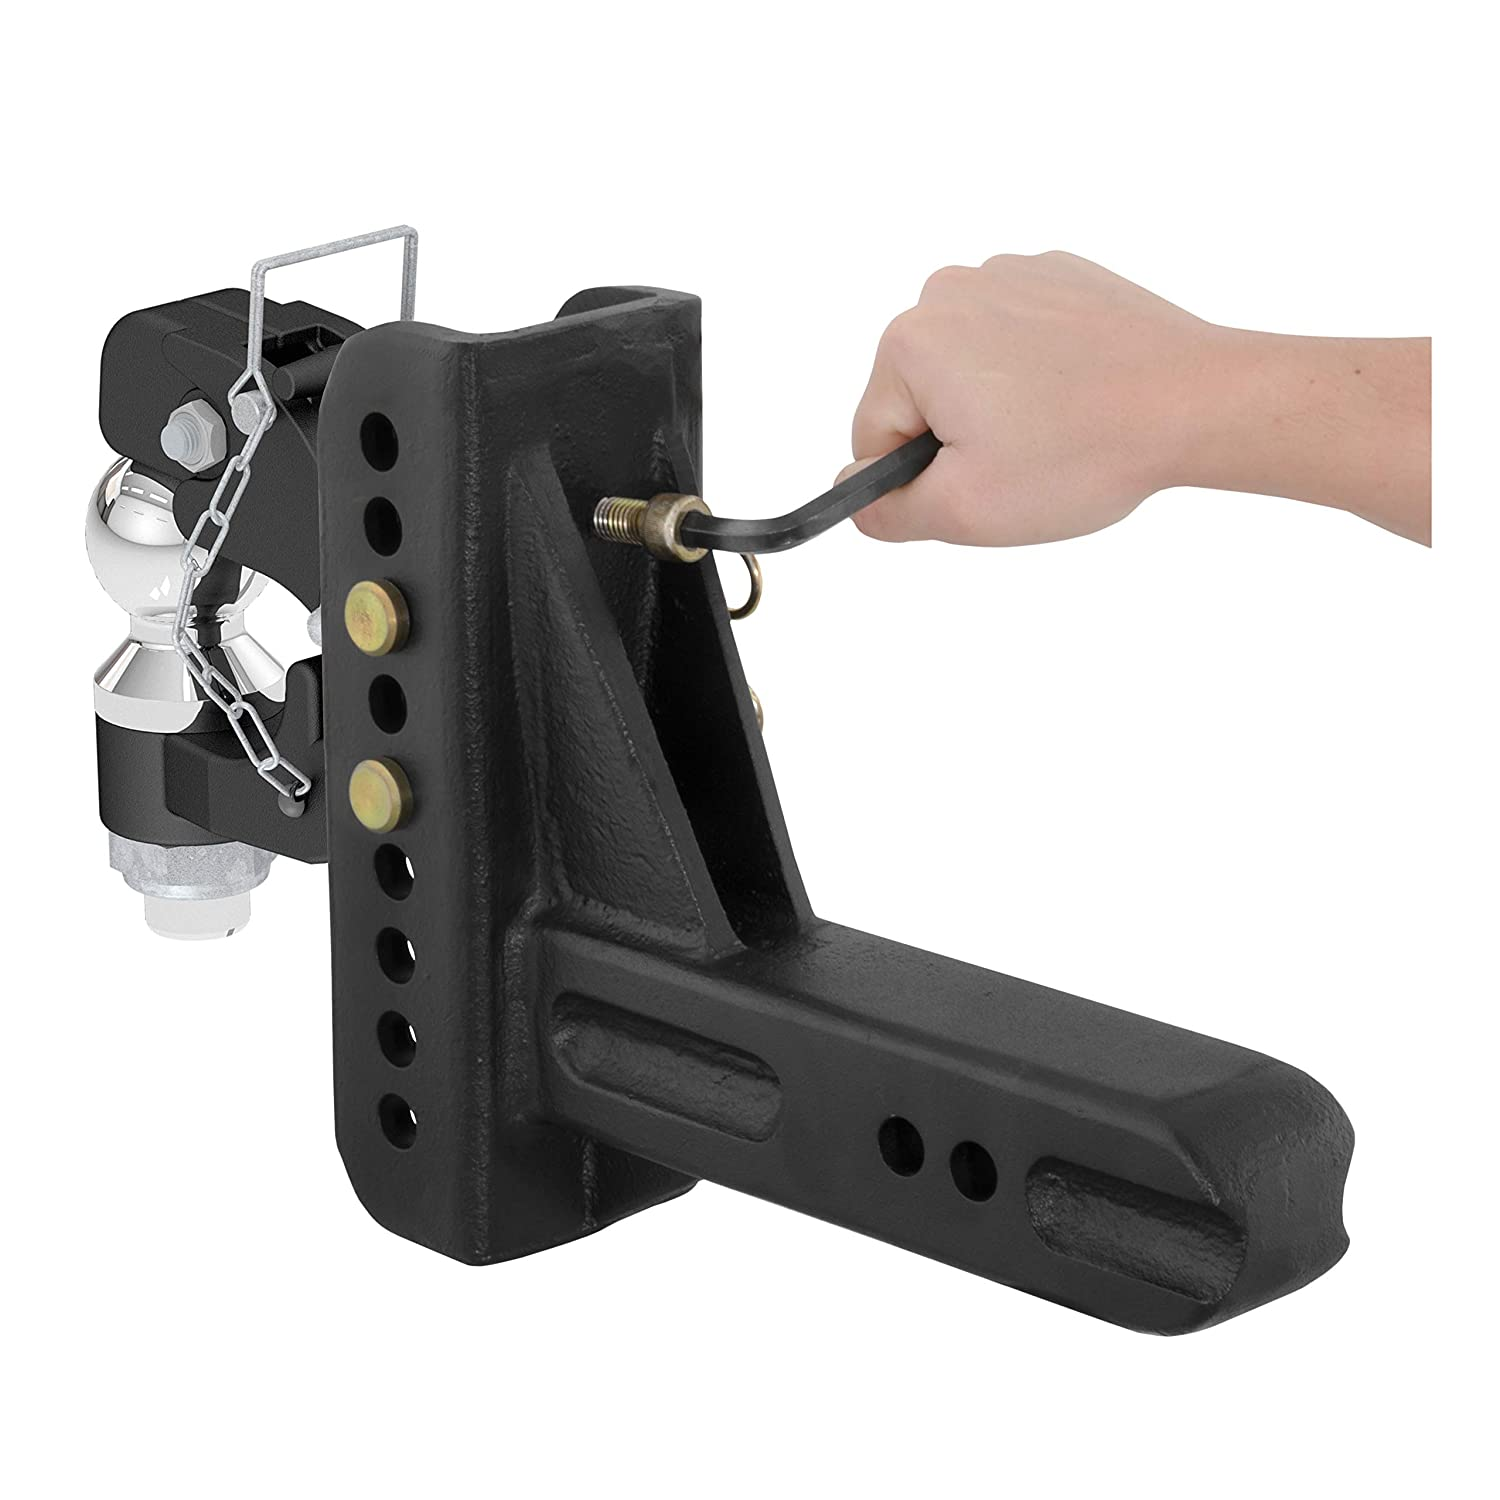 5-1//4-Inch Rise 2-5//16-Inch Fits 2-1//2-Inch or 3 Lunette Ring 6-Inch Drop CURT 45908 Adjustable Pintle Hitch Combination Receiver